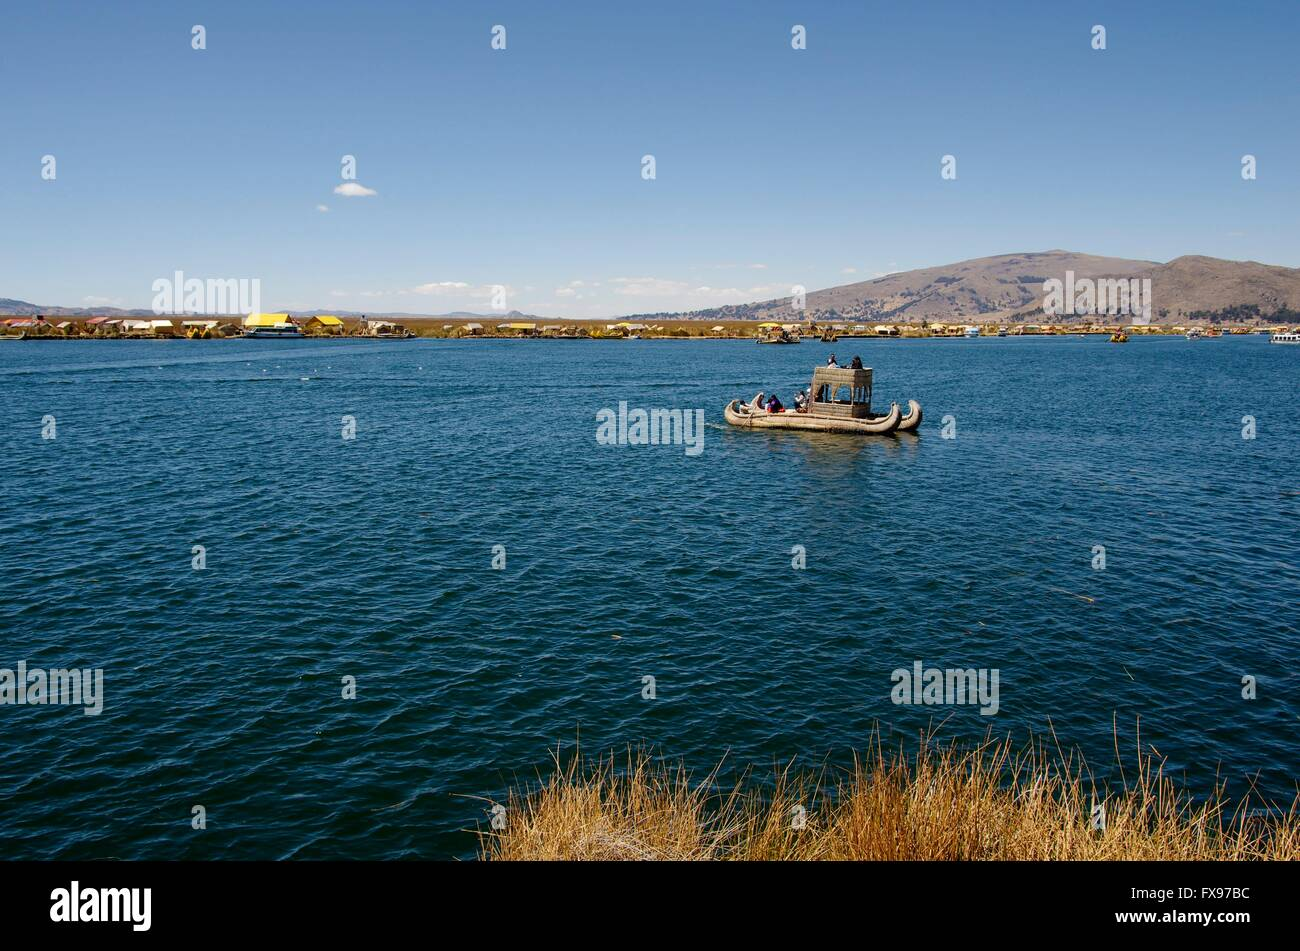 Reed boats as a tourist attraction on Lake Titicaca. Nowadays tourism is an important source of income for the Uros - Stock Image